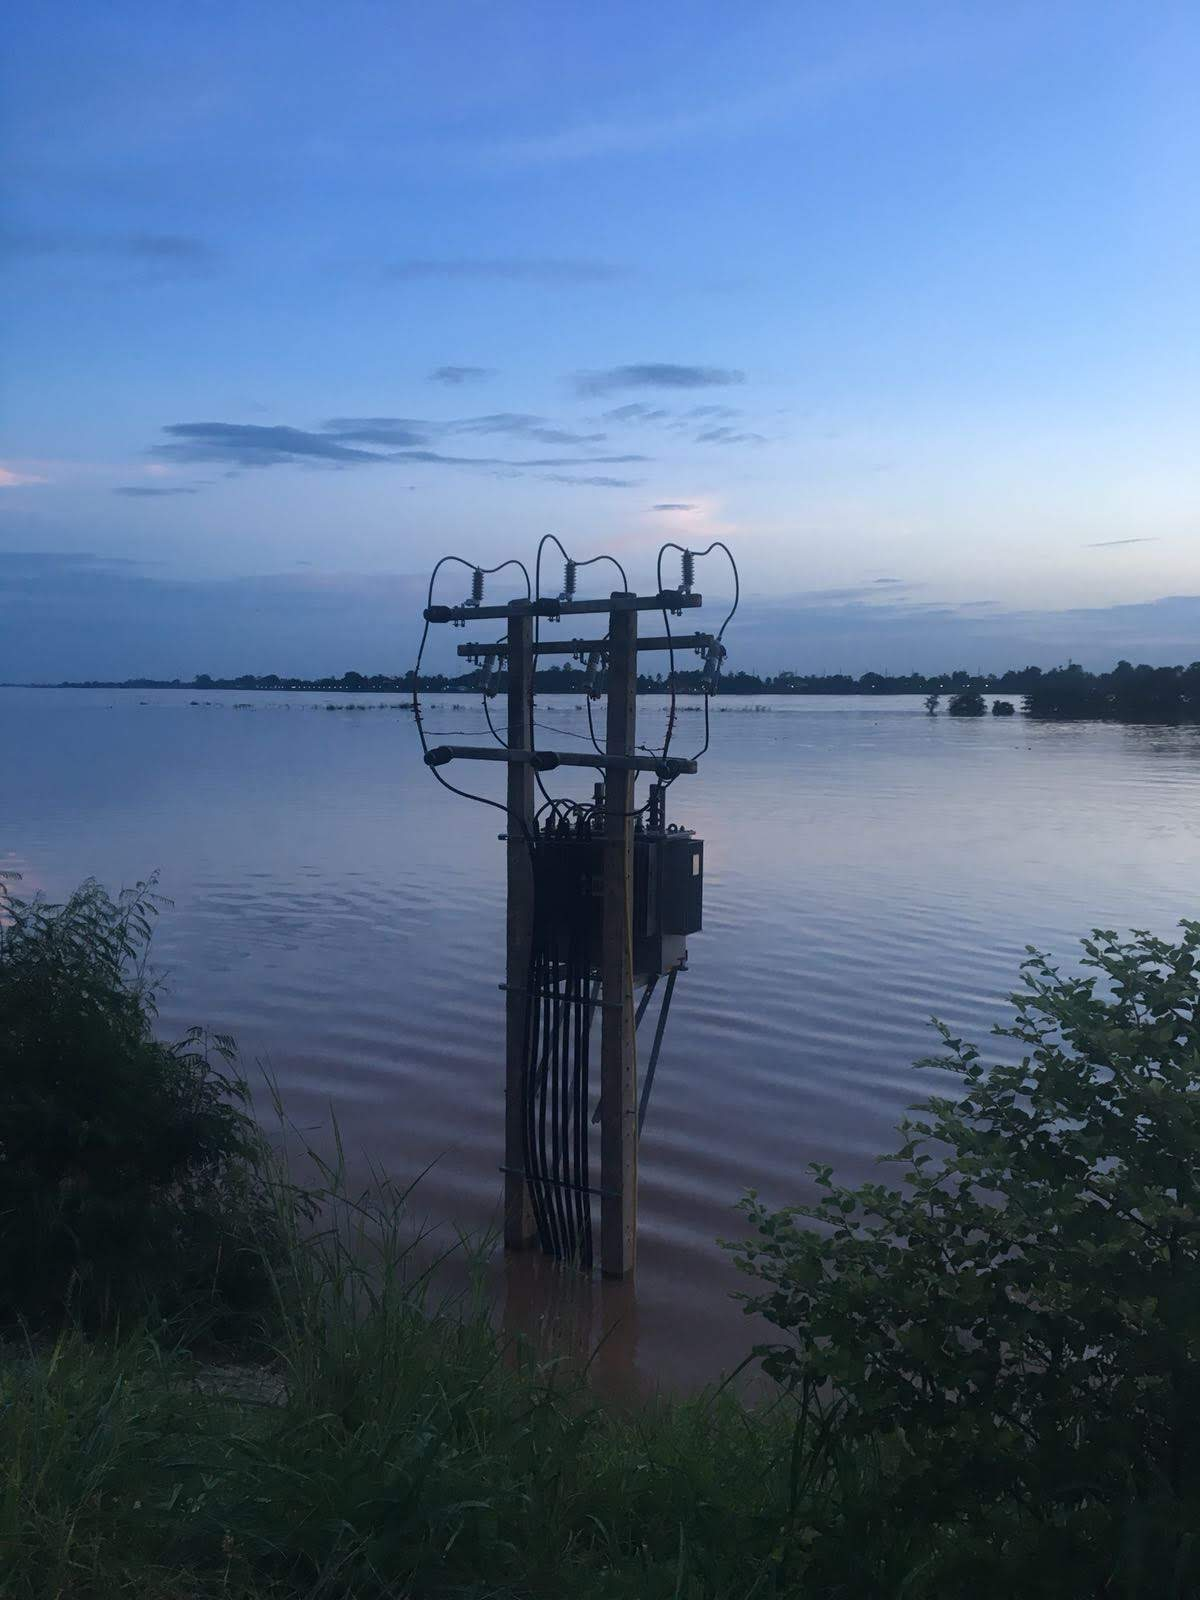 A power distribution line in a flood zone at dusk.